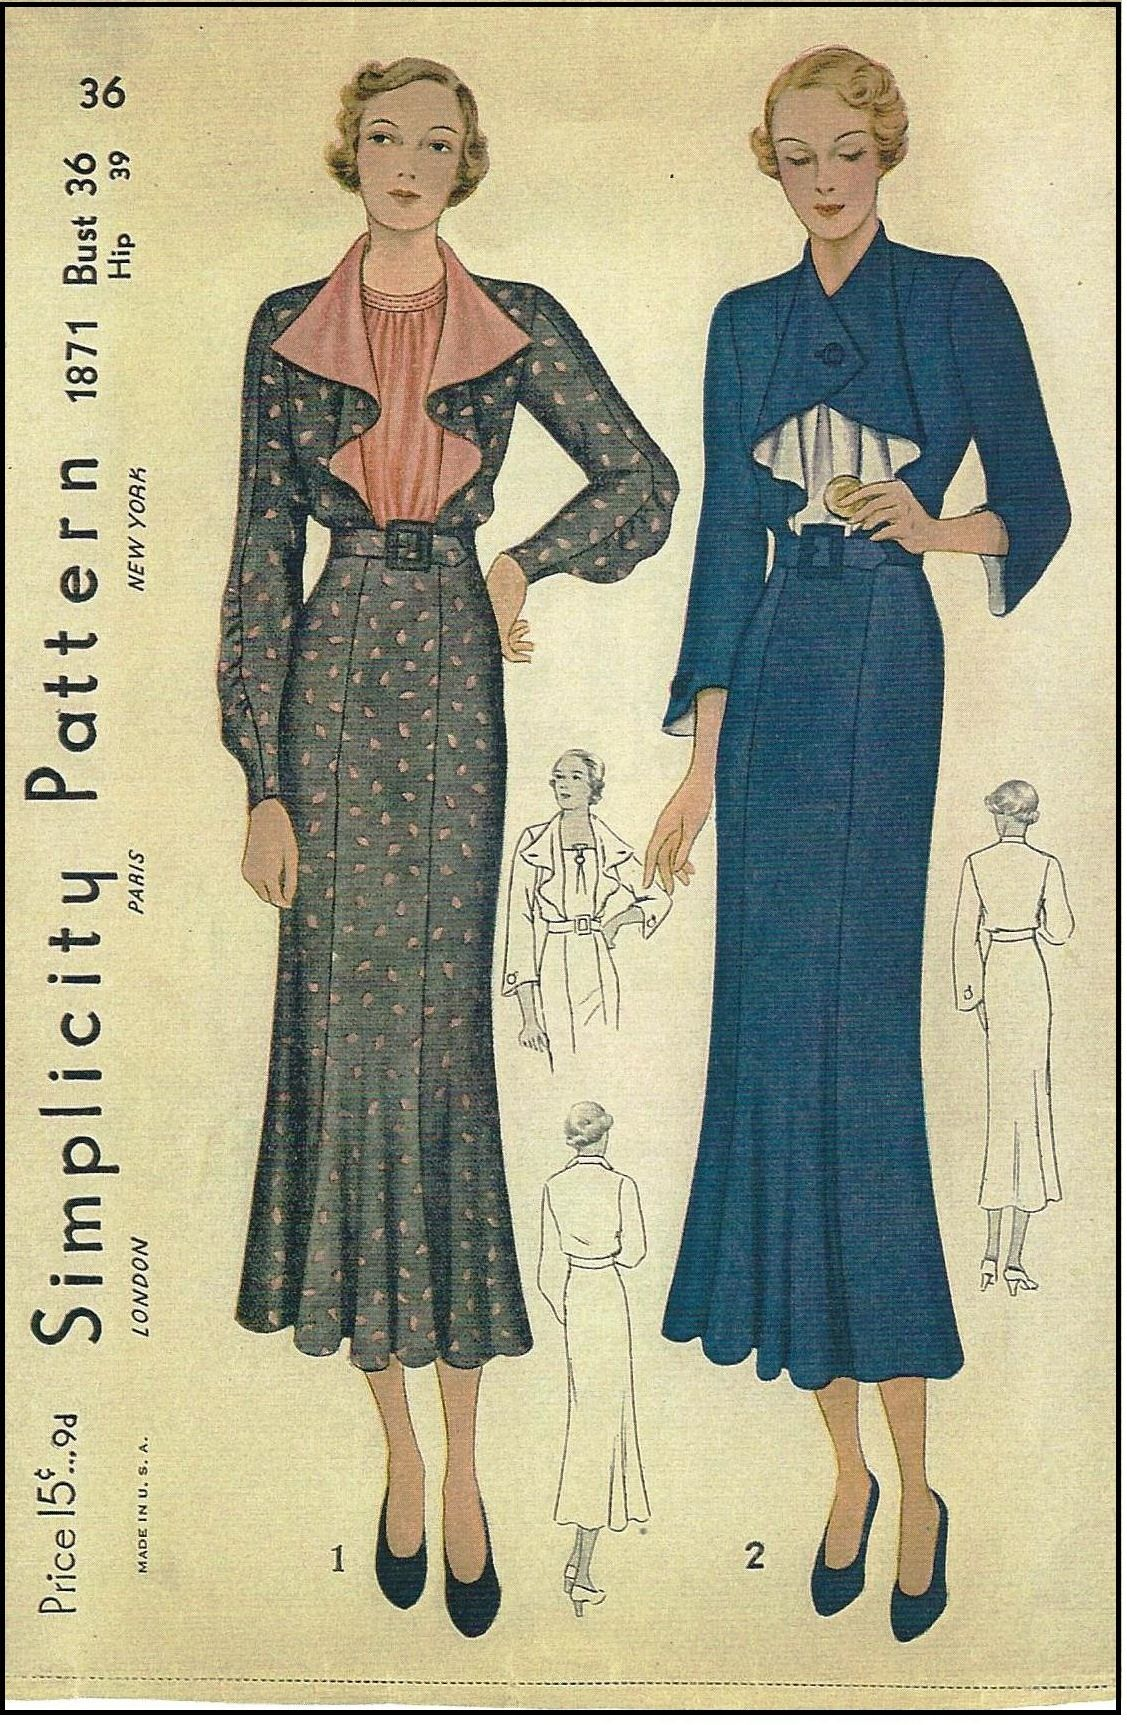 1930s Ladies Dress With Flounce Collar Sewing Pattern Simplicity 1871 Vintage Fashion 1930s Vintage Sewing Patterns Retro Fashion